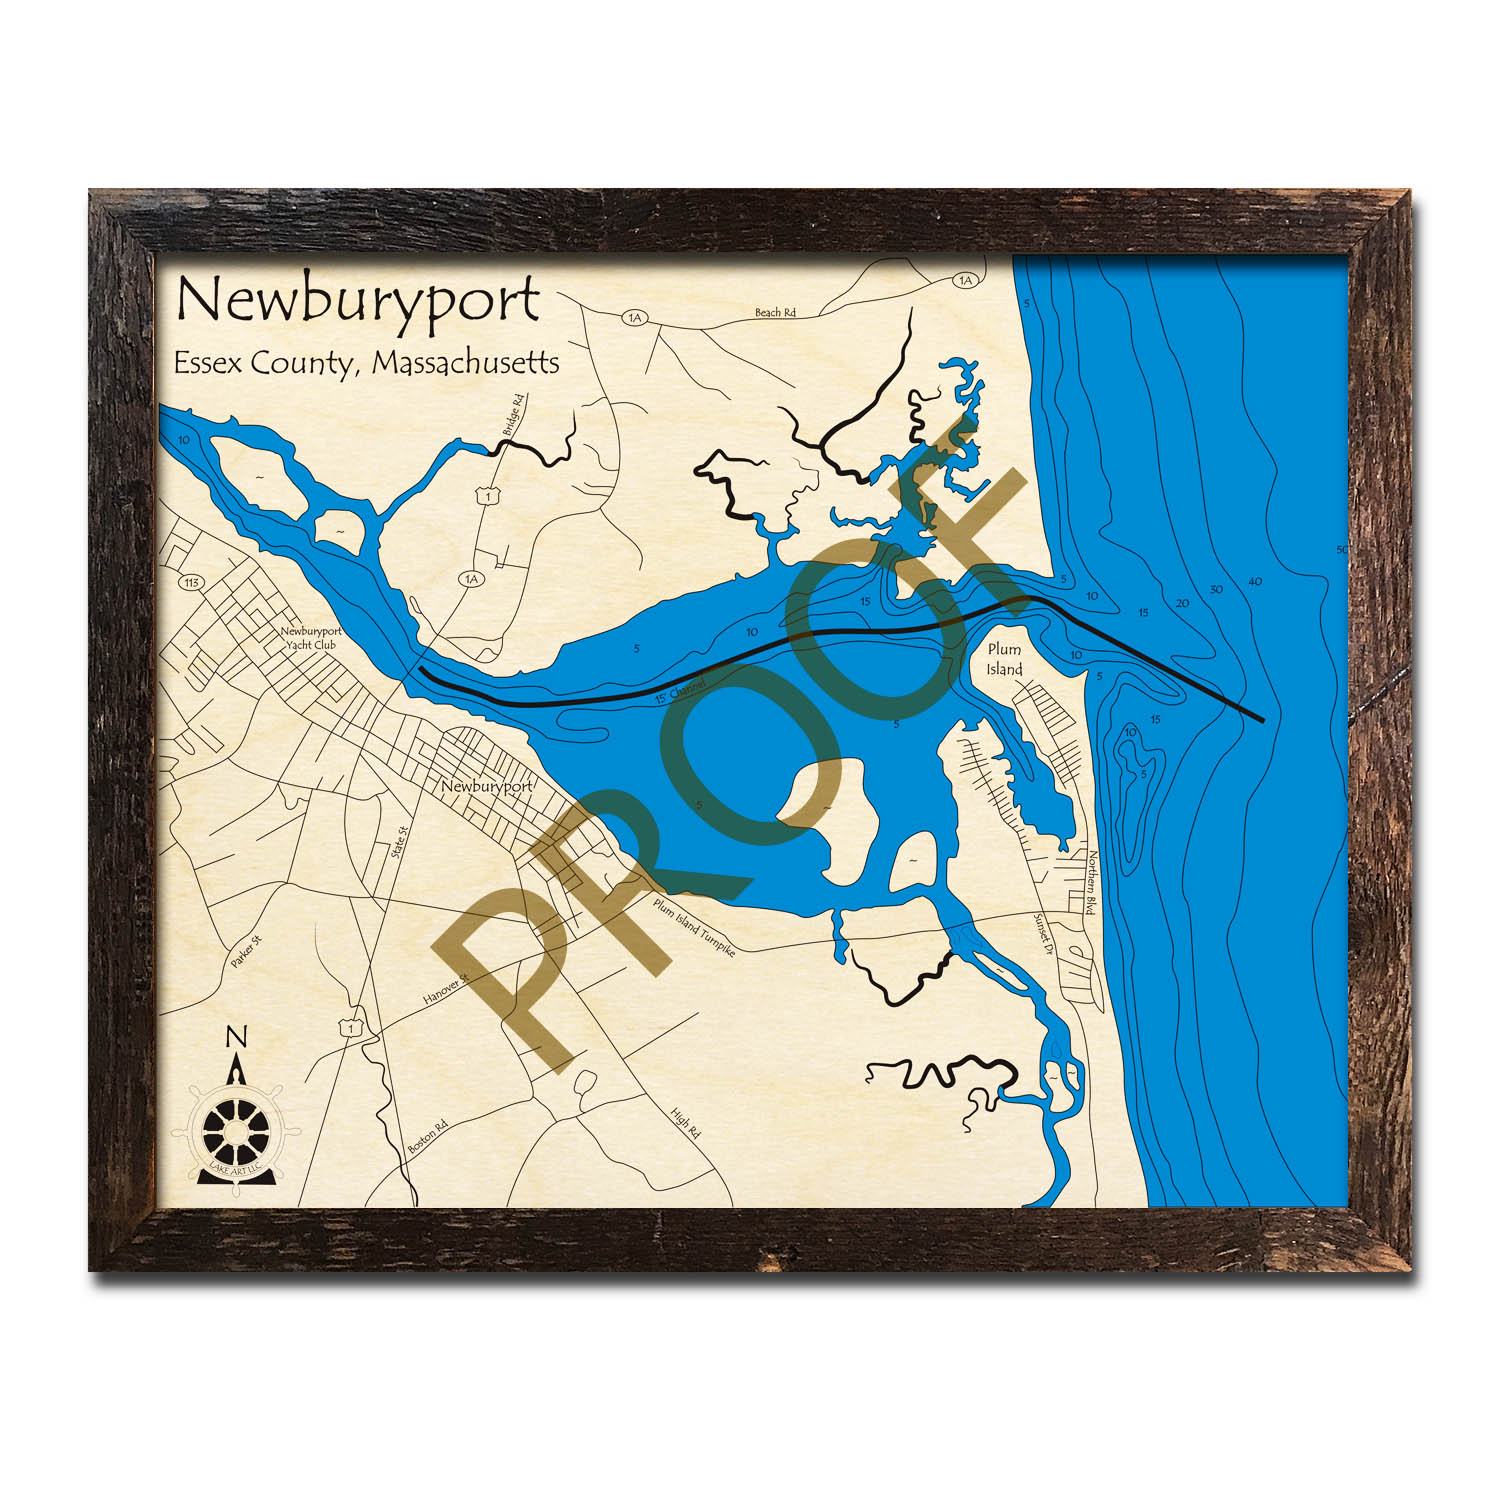 Newburyport, MA Nautical Wood Maps on plum island map, westfield ma map, plum island, newbury ma map, millers falls ma map, essex county, nashua ma map, george whitefield, cohasset ma map, kittery ma map, plymouth ma map, manchester by the sea ma map, east orleans ma map, boston harbor ma map, camp edwards ma map, pawtucket ma map, duxbury ma map, taunton ma map, rhode island ma map, north leominster ma map, greenwich ma map, the berkshires ma map, salem ma map, merrimack river,